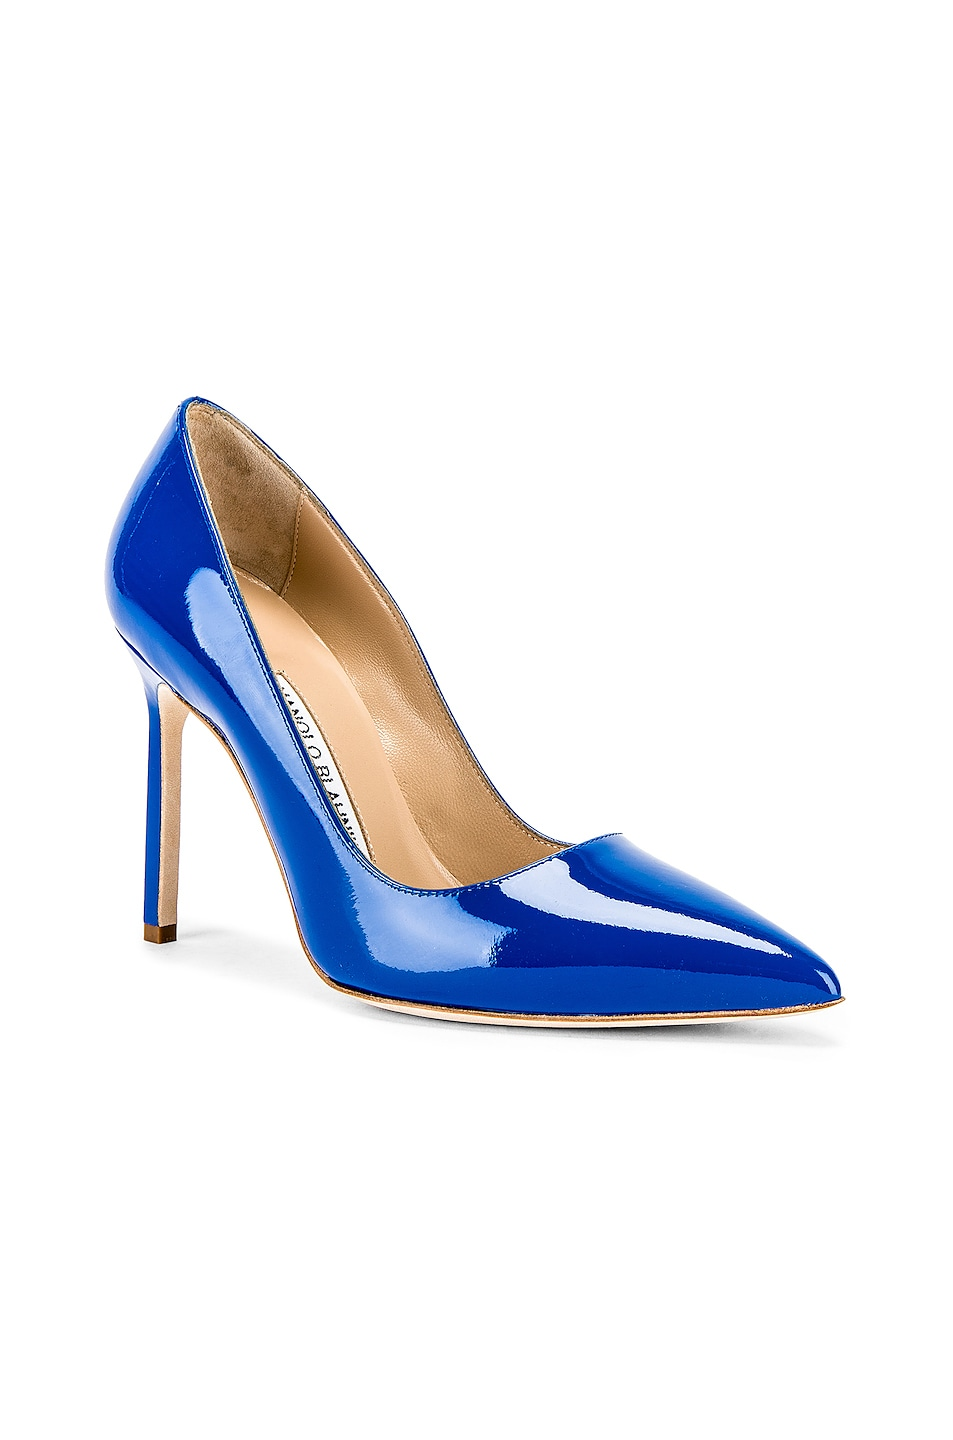 Image 2 of Manolo Blahnik BB Pump in Electric Blue Patent